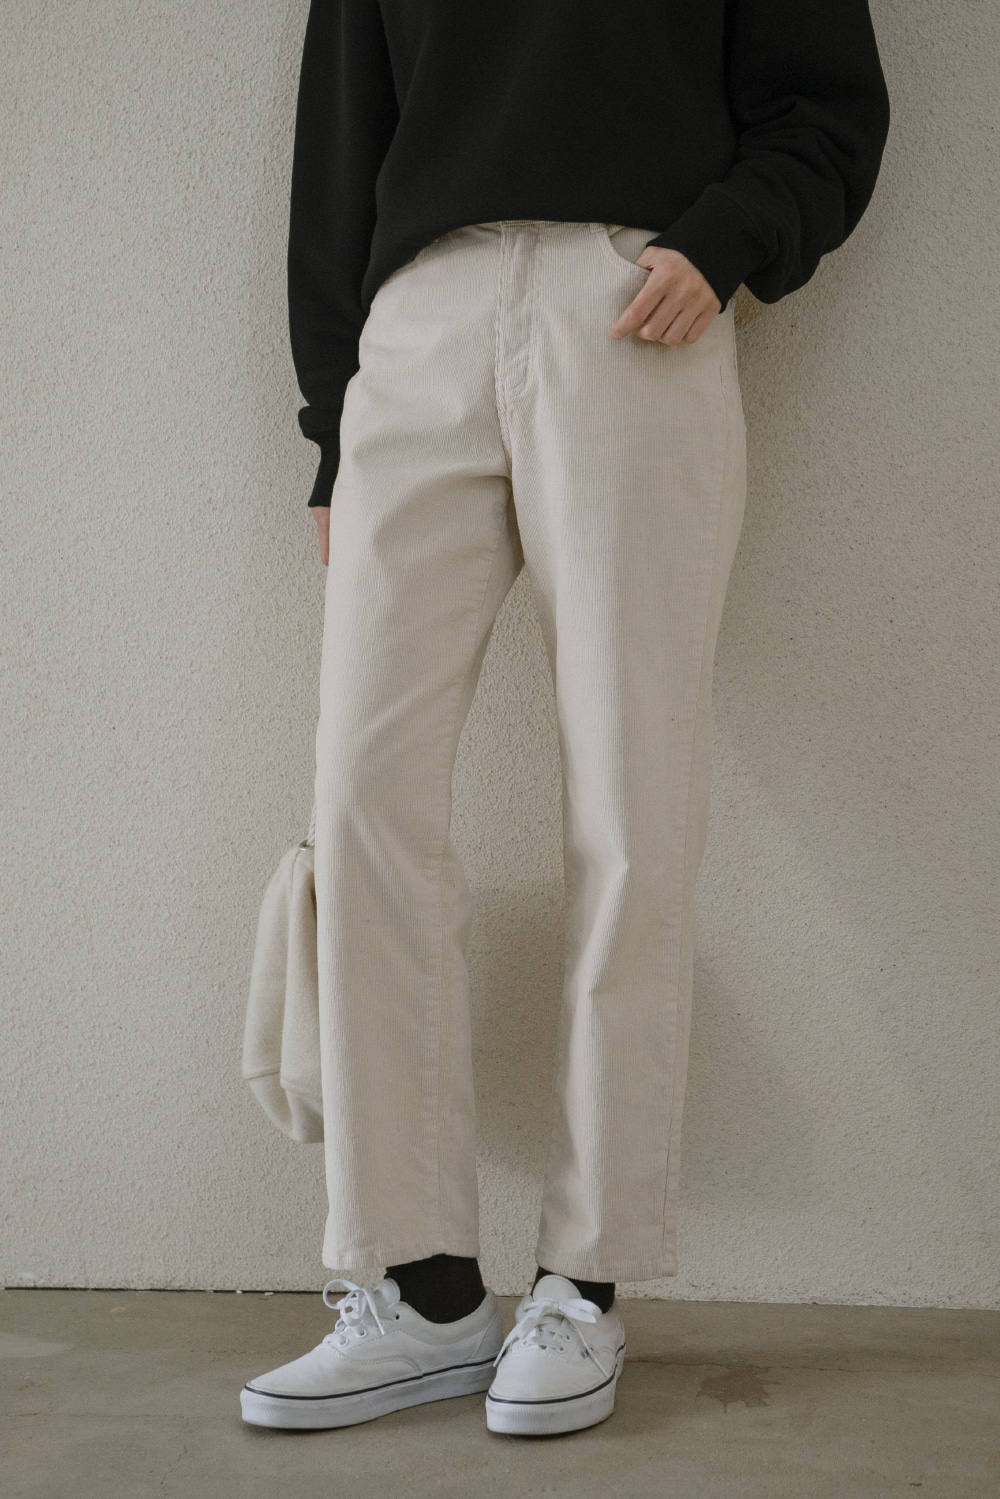 8676_Warm corduroy pants